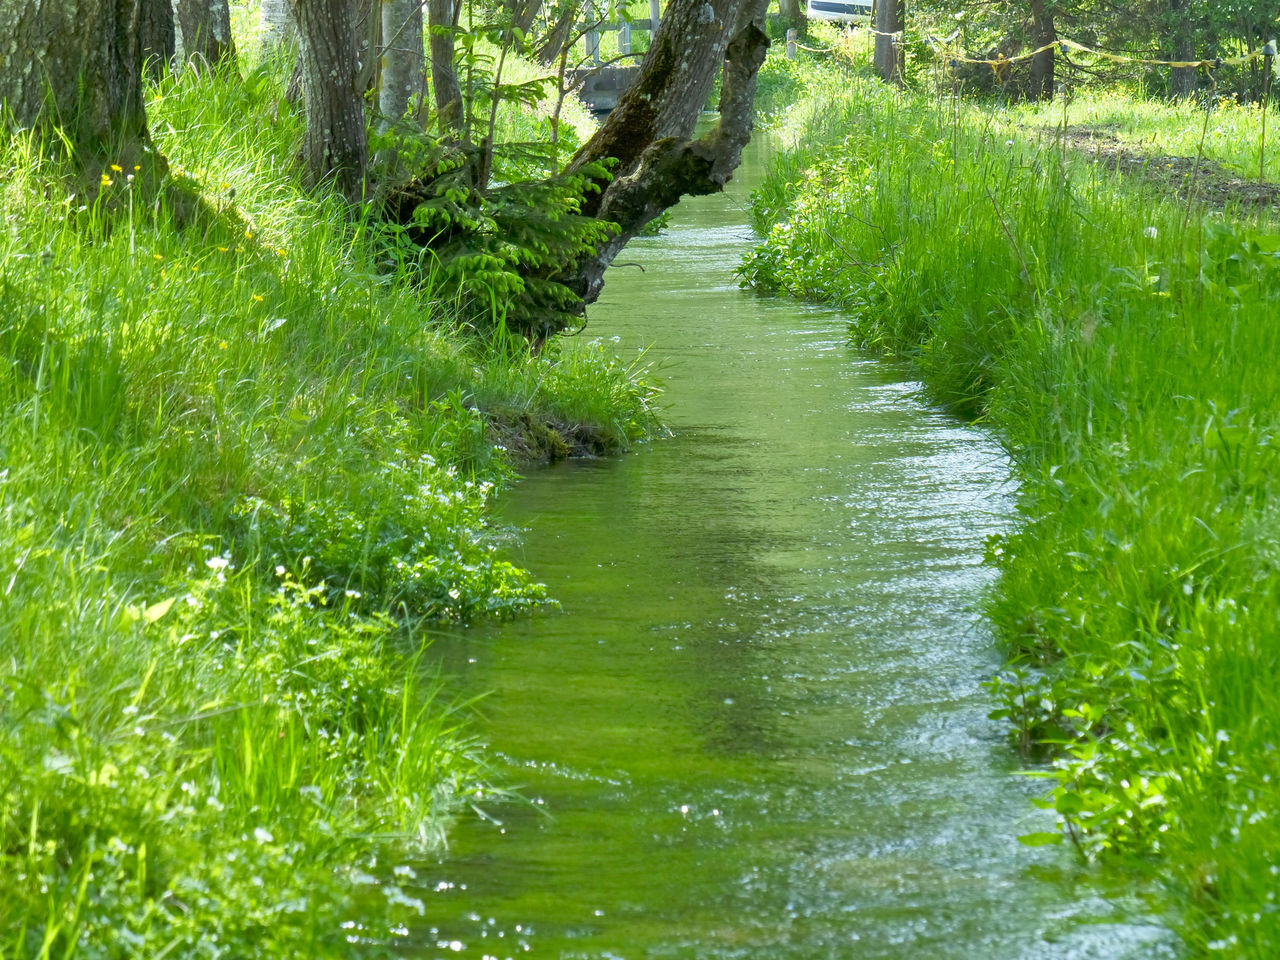 Reflection Of Lush Foliage In Stream